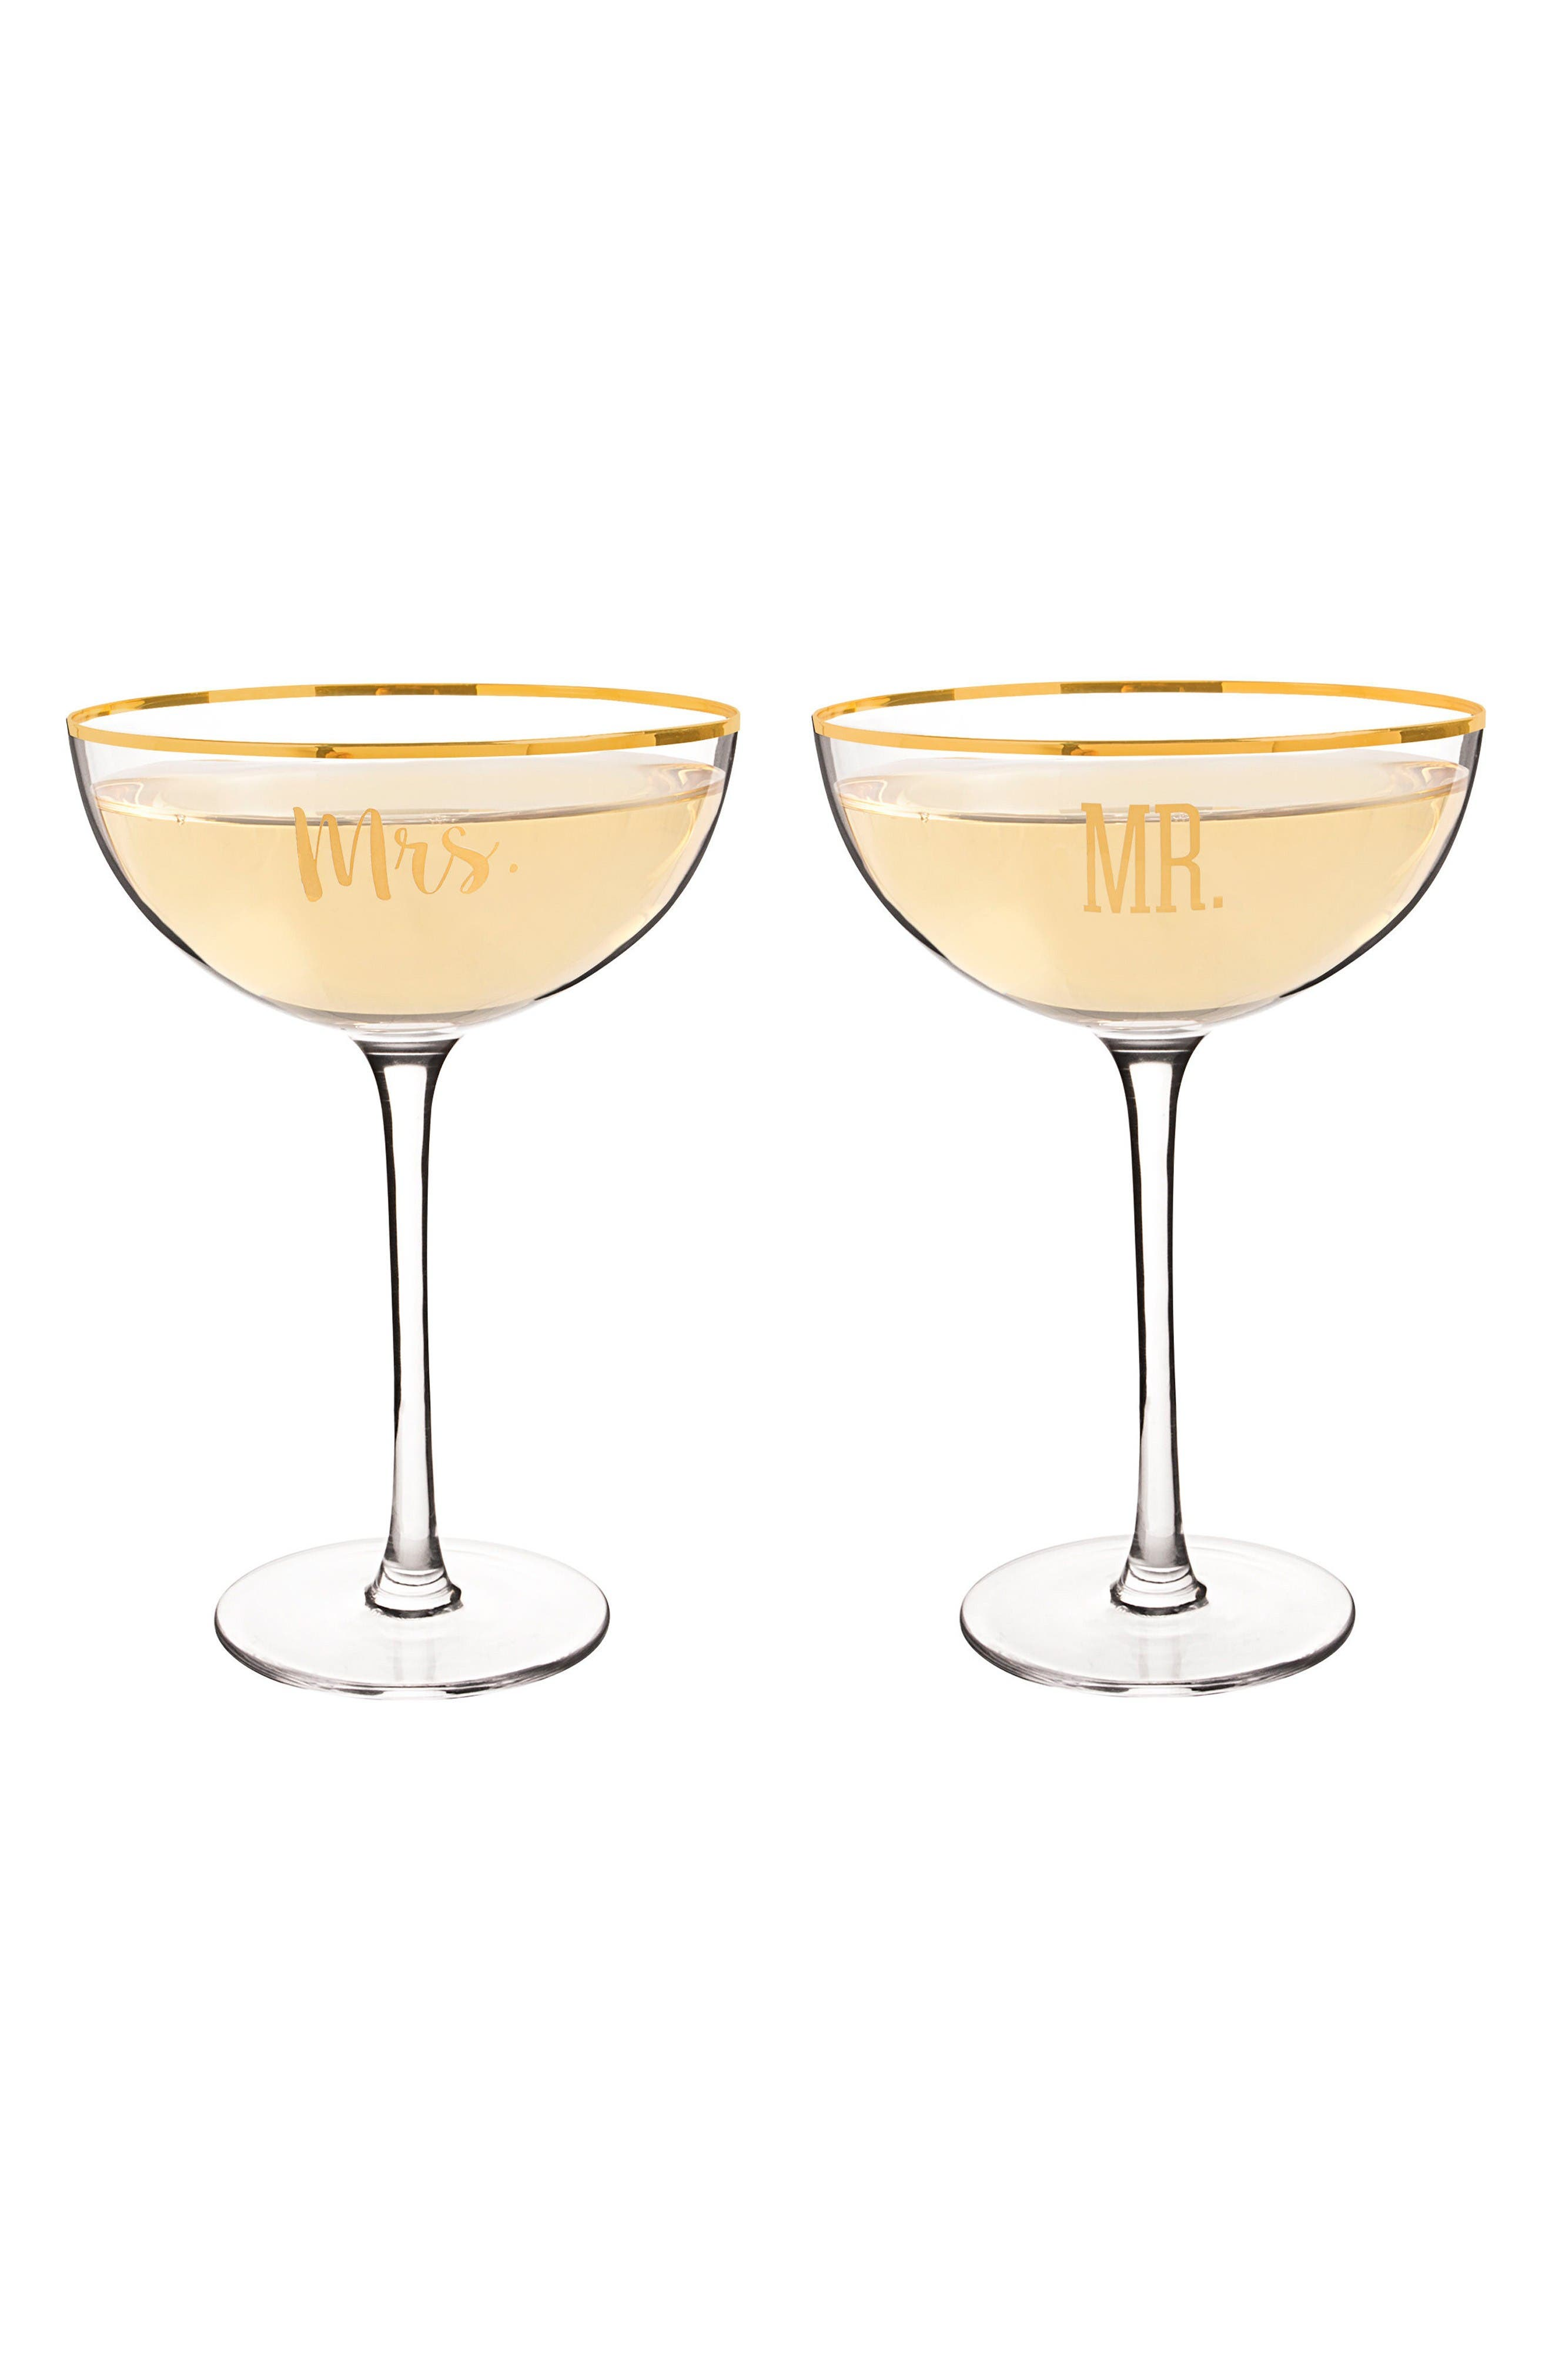 Mr. & Mrs. Set of 2 Champagne Coupe Toasting Glasses,                             Alternate thumbnail 2, color,                             Gold